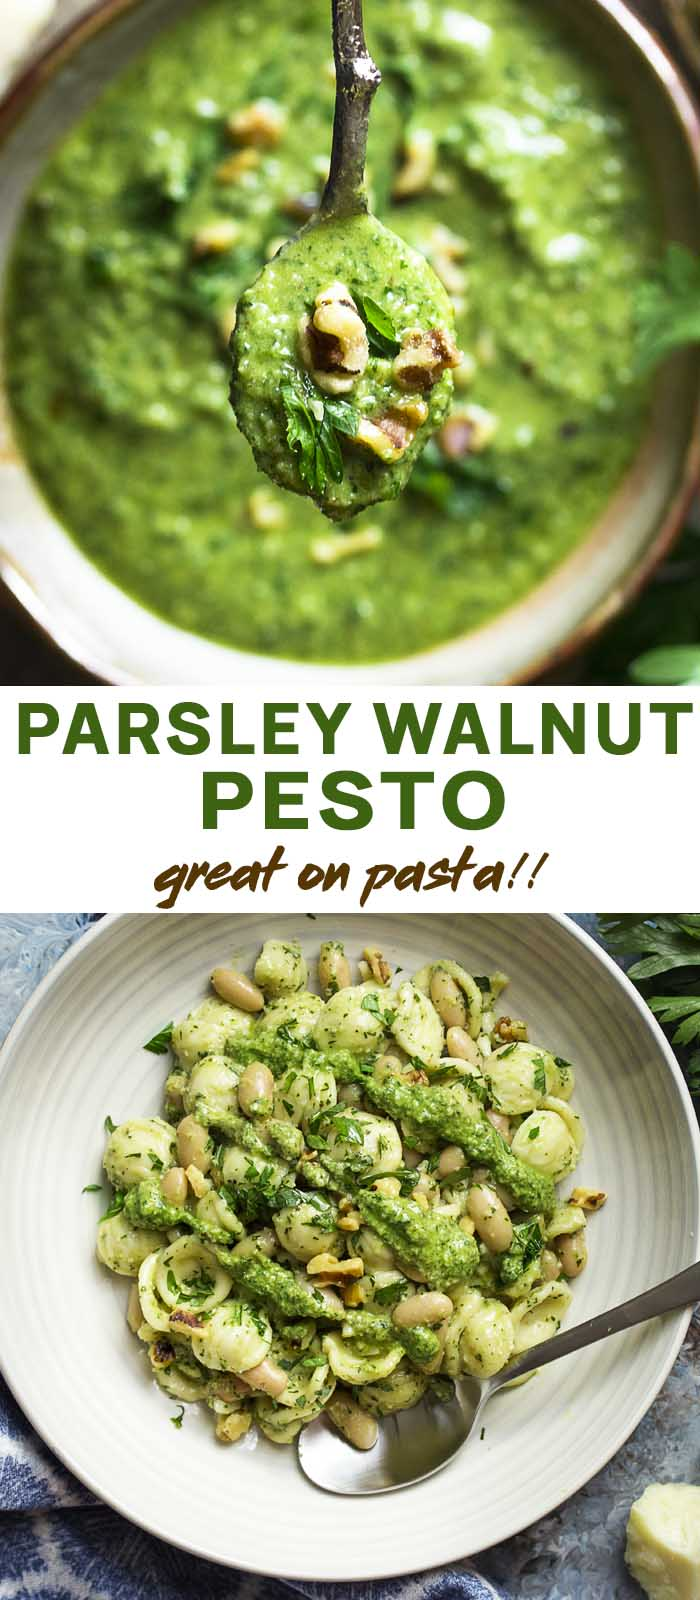 Pesto in a serving bowl and over pasta with text overlay - Parsley Walnut Pesto.